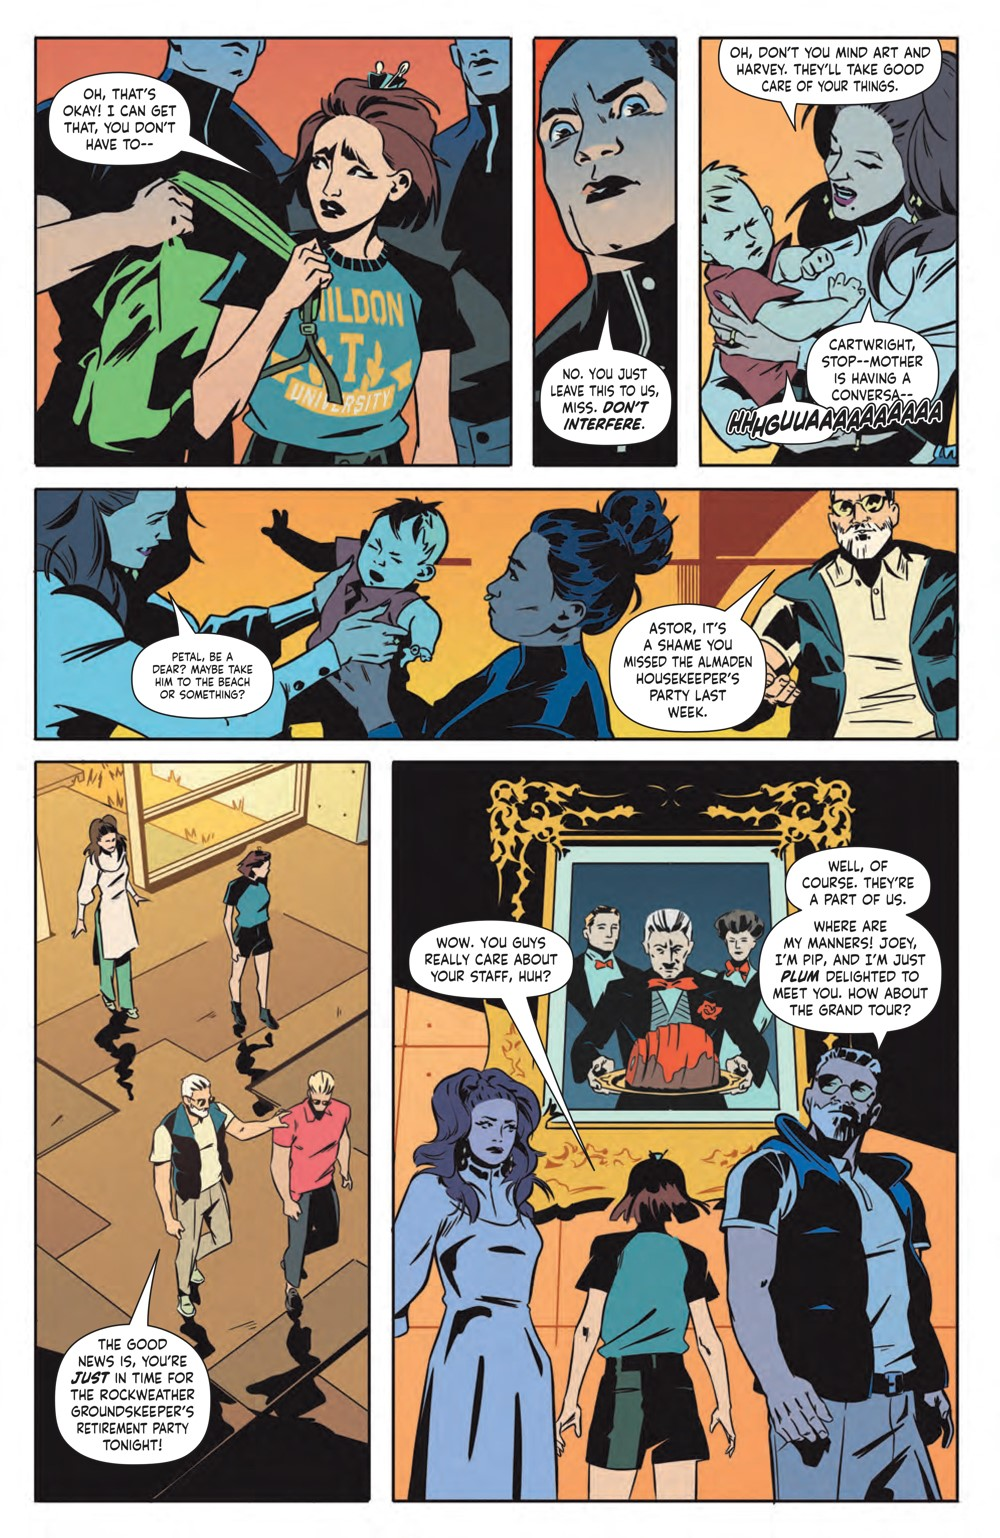 EatTheRich_001_PRESS_7 ComicList Previews: EAT THE RICH #1 (OF 5)